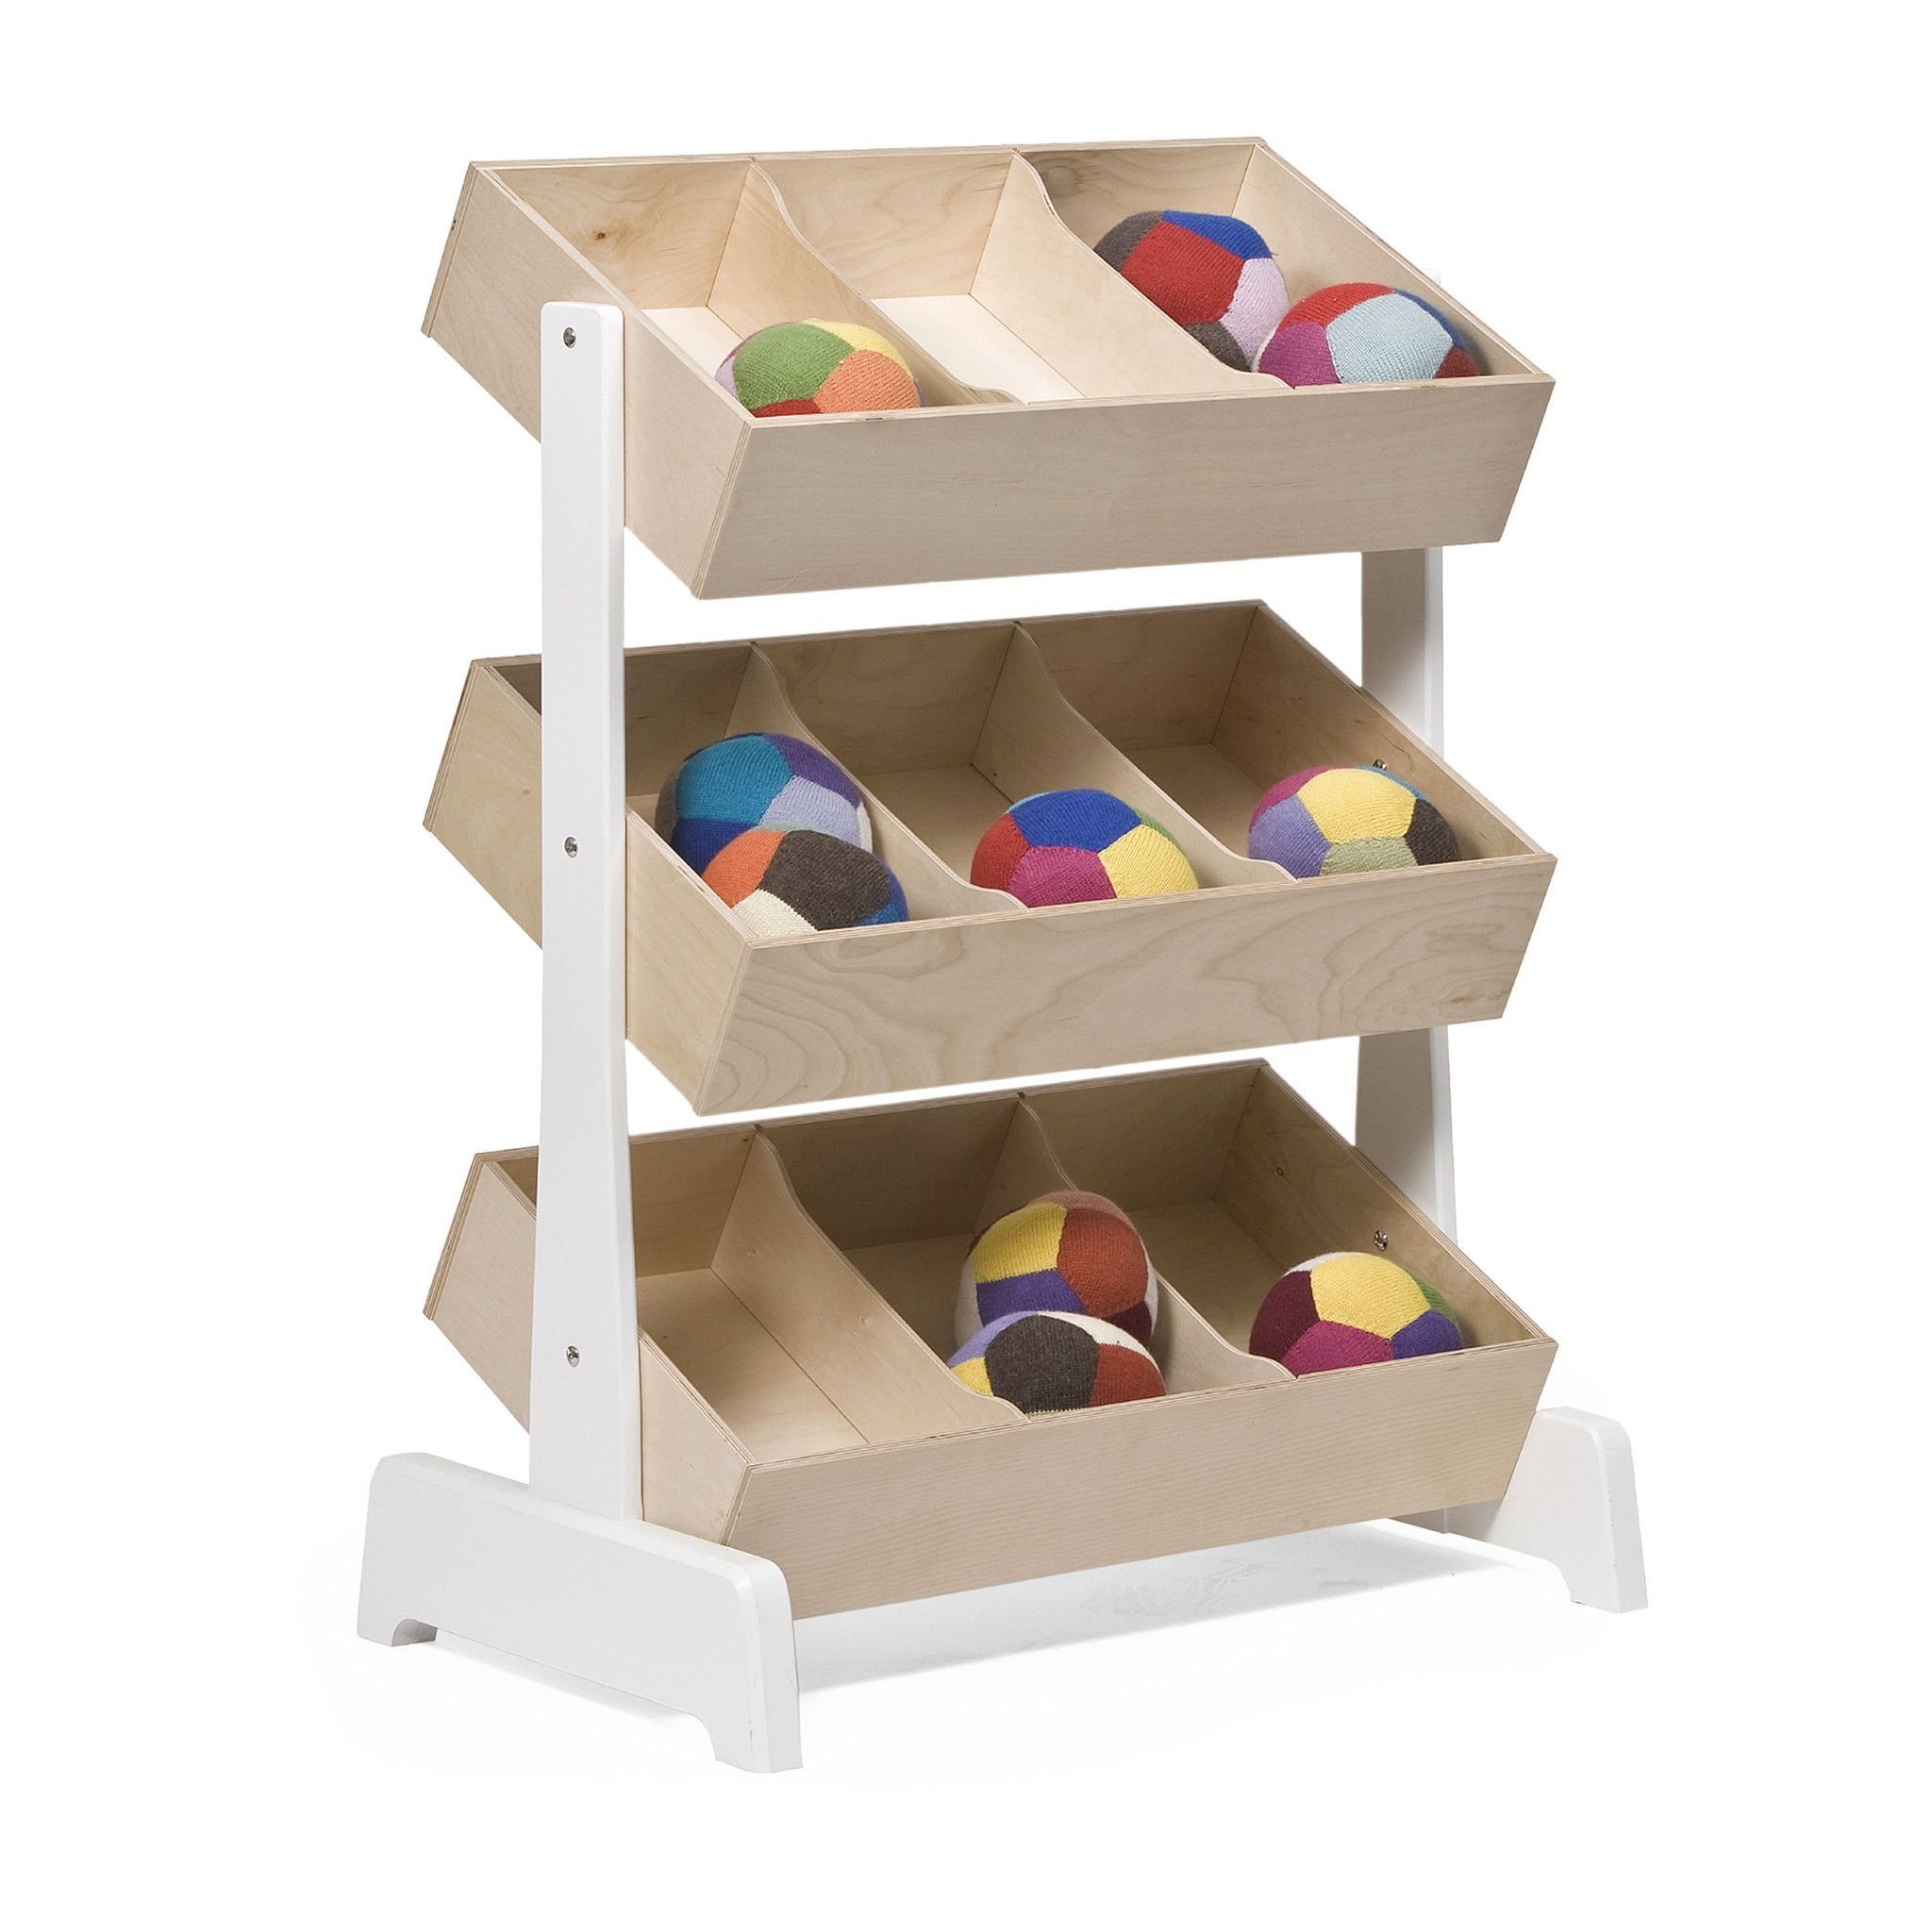 Medium Of Kids Storage Bins